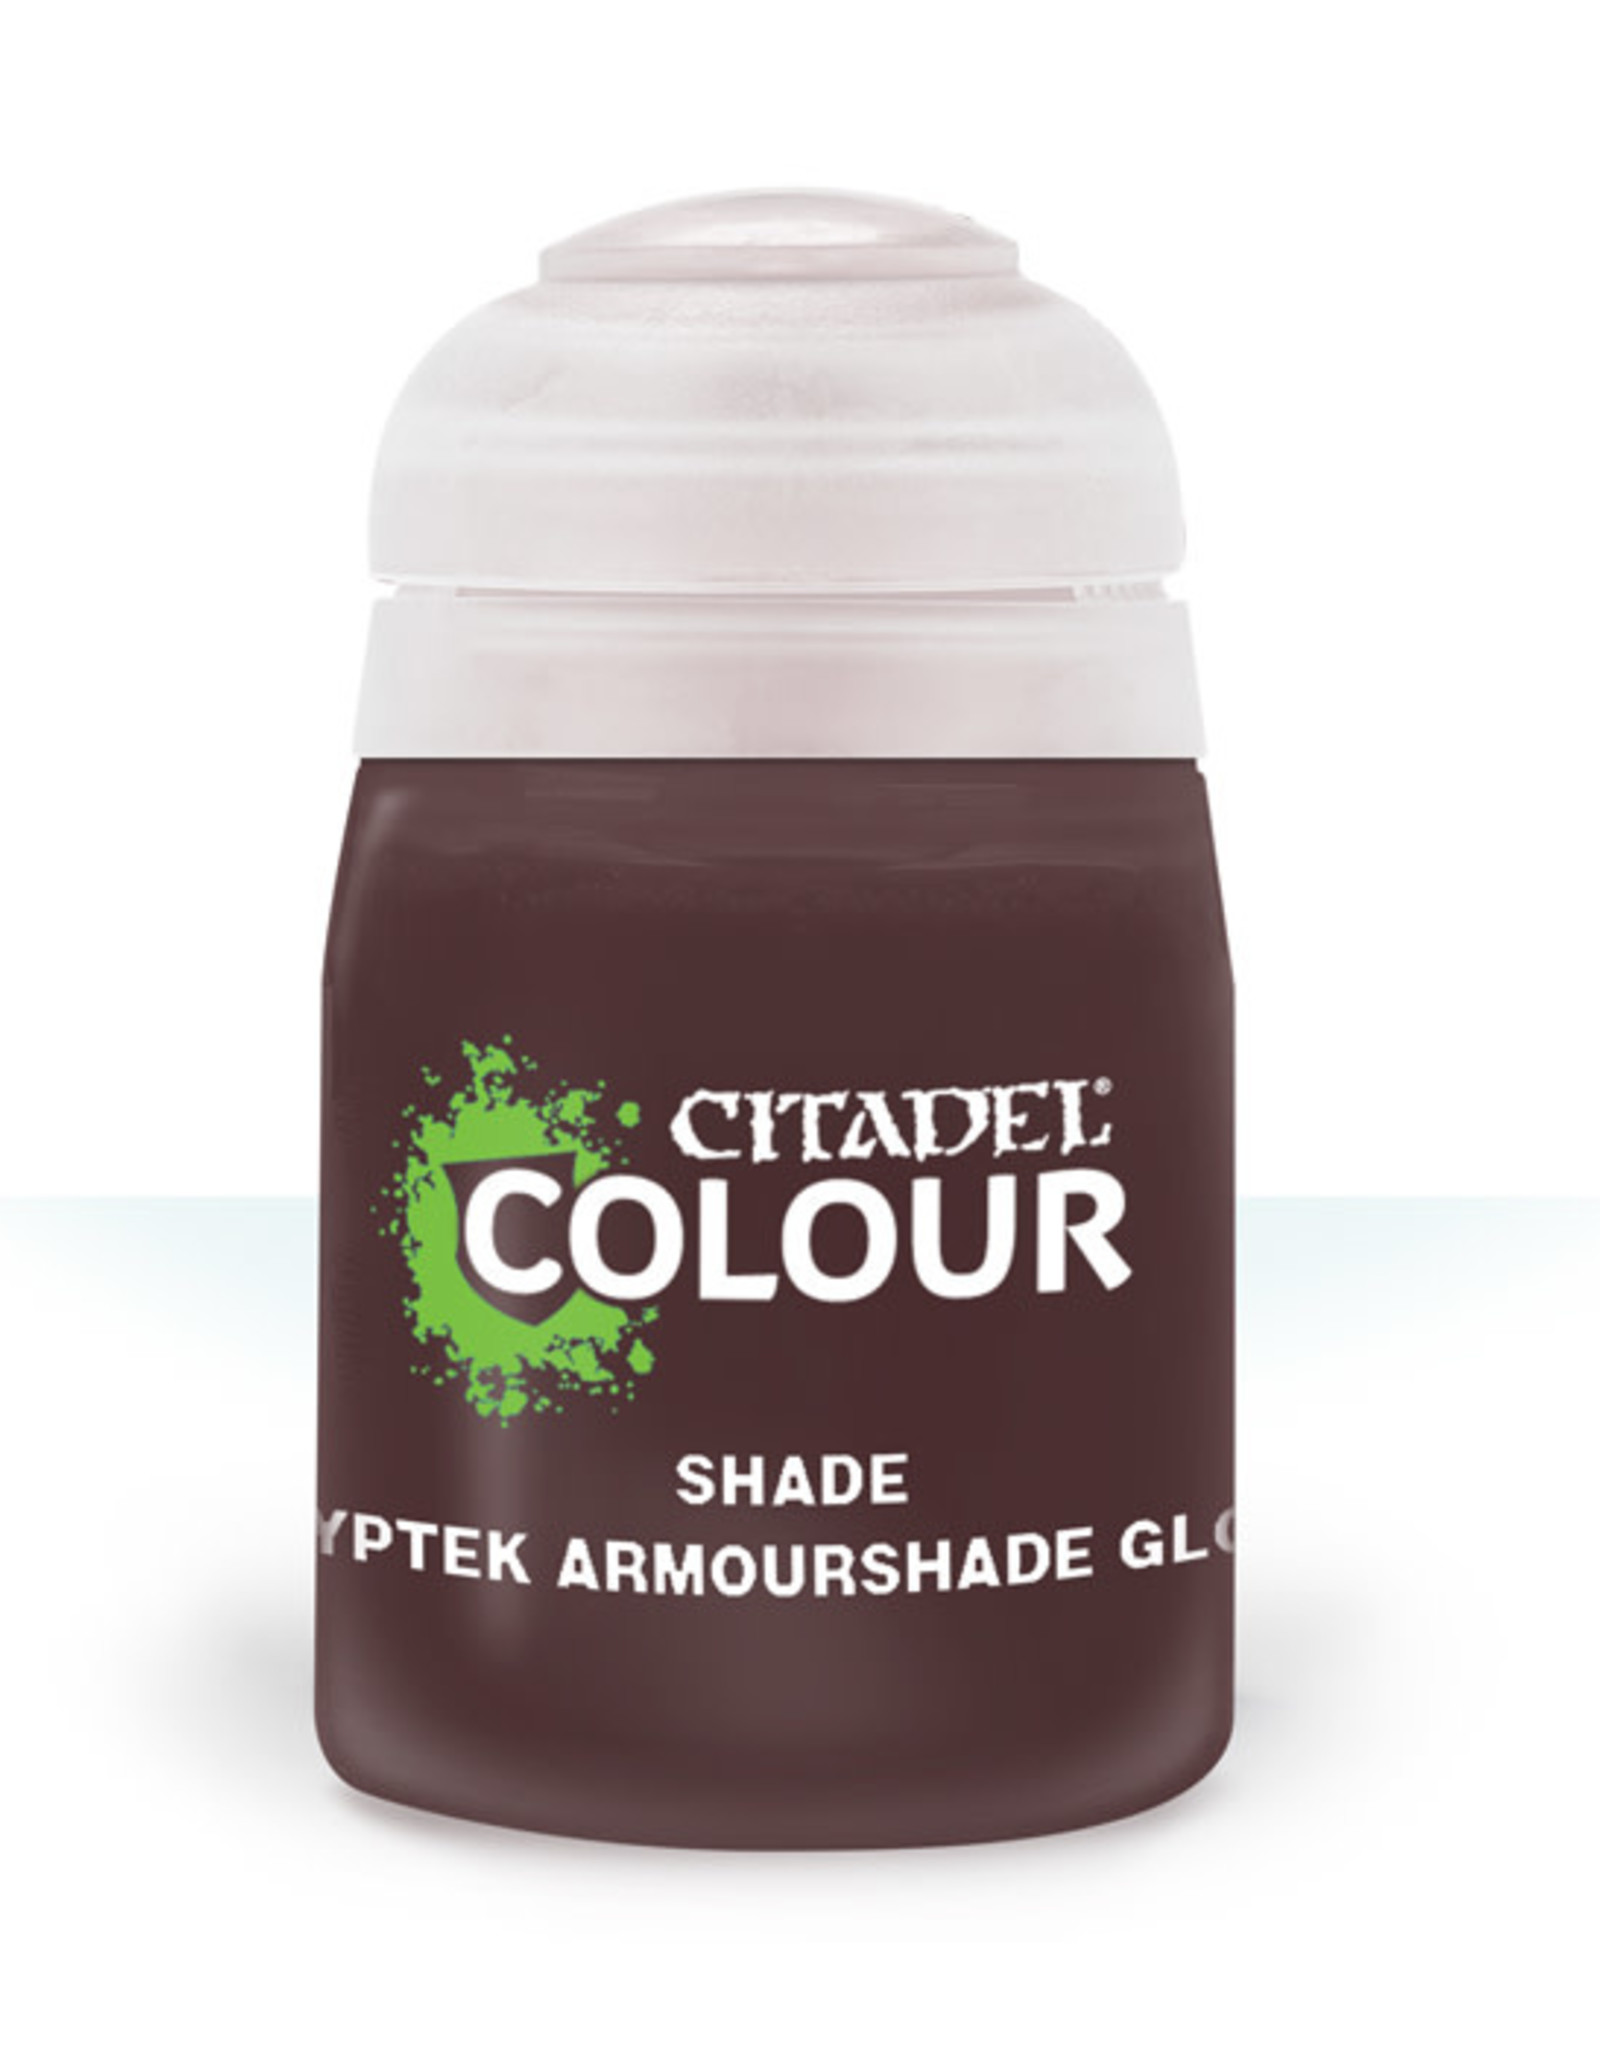 Citadel Citadel Colour: Shade - Cryptek Armourshade Gloss